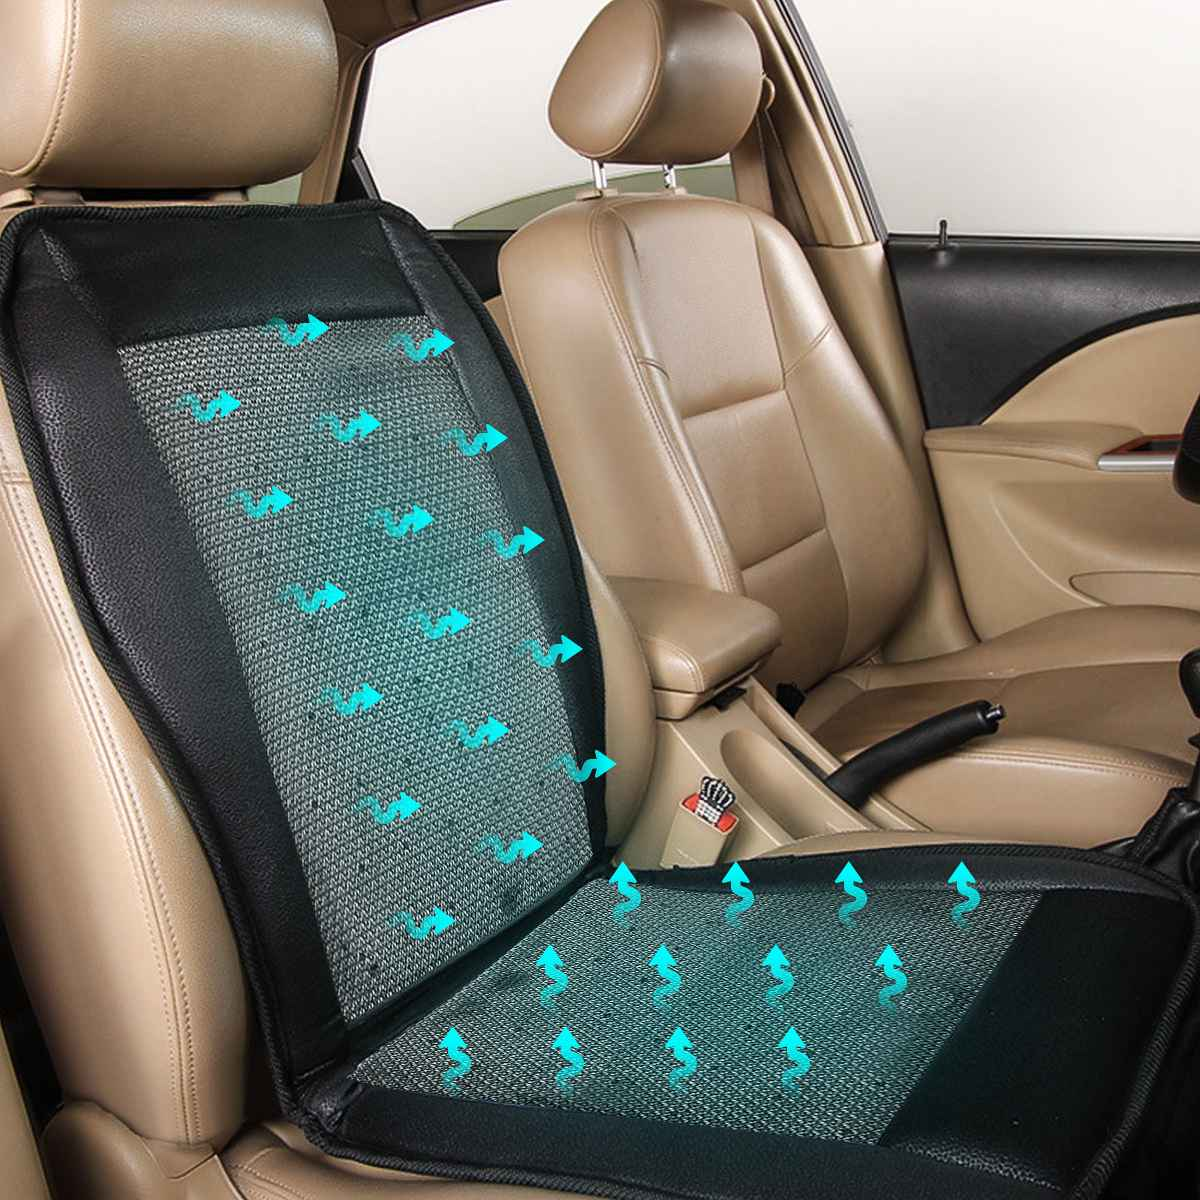 12V Summer Cool Cushion W/ The Fan Blowing Cool Summer Ventilation Cushion Seat Cushion Car Seat W/cigarette Lighter Controller